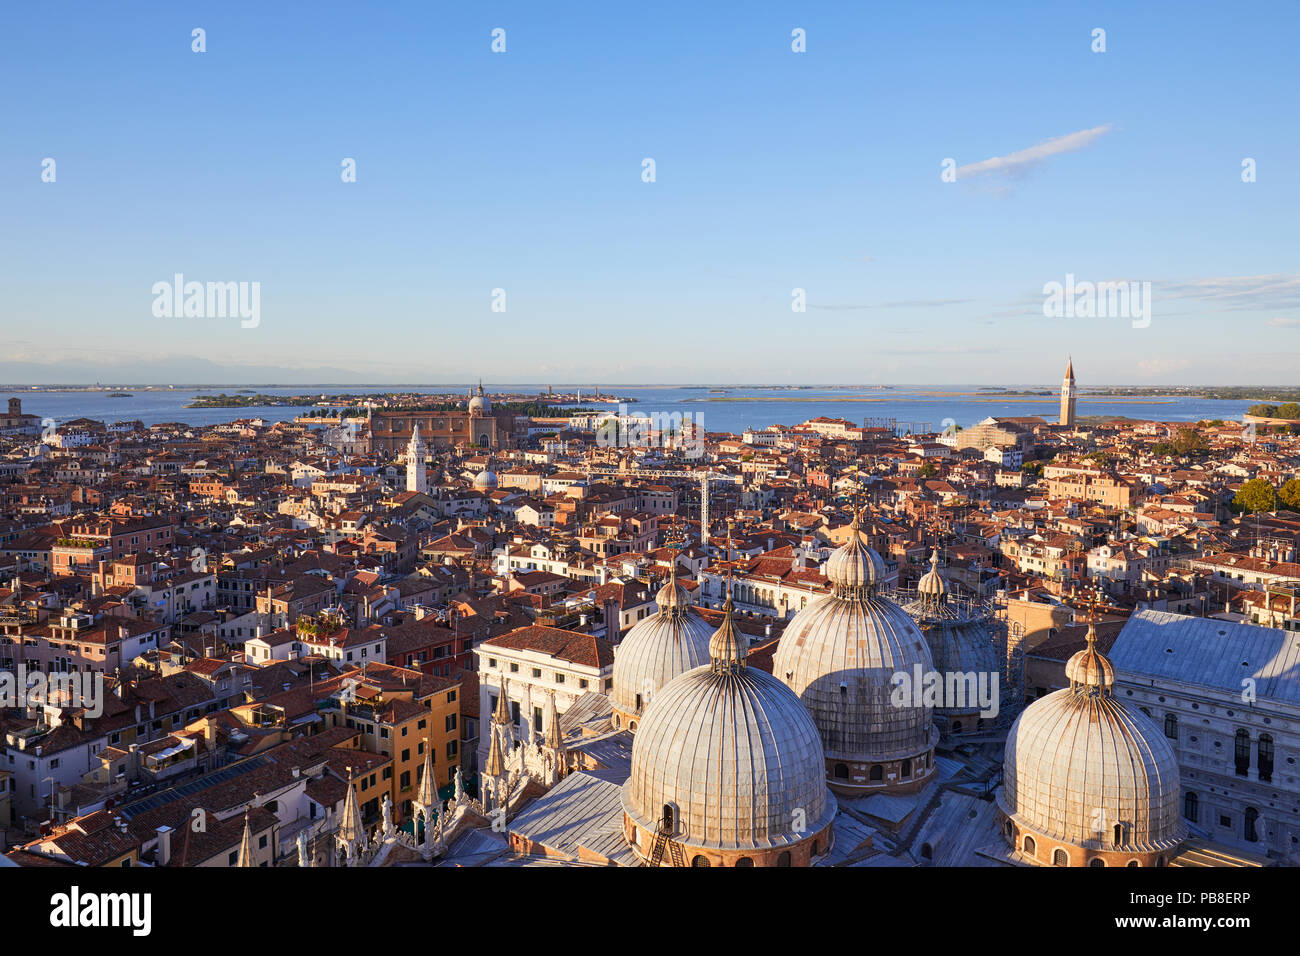 Elevated view of Venice with basilica domes and rooftops from San Marco bell tower before sunset, Italy Stock Photo